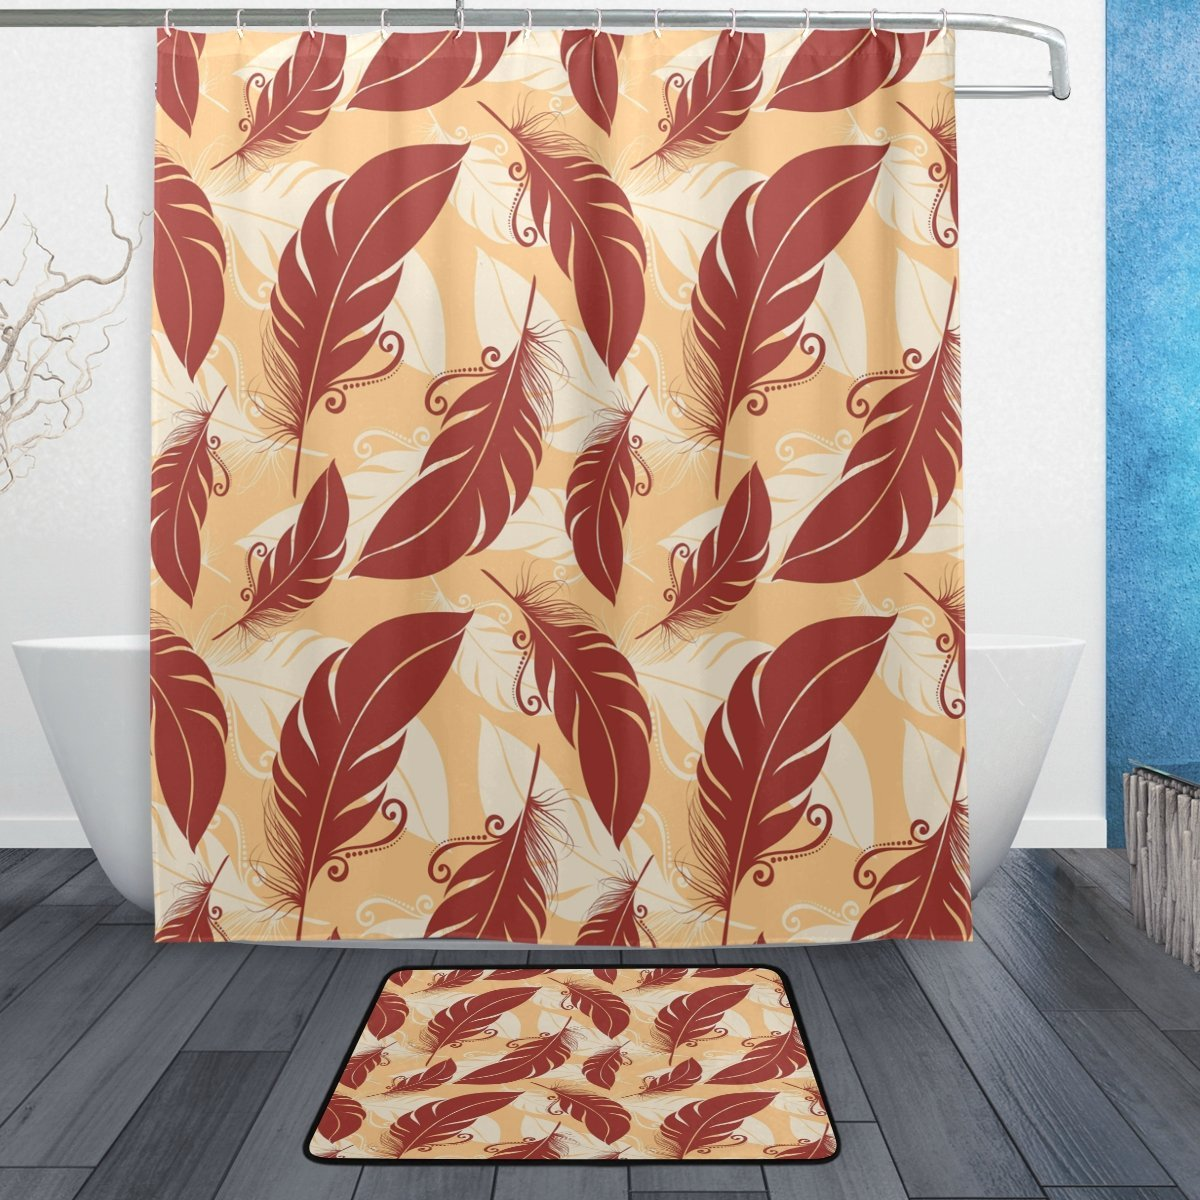 Vintage Abstract Feather Waterproof Polyester Fabric Shower Curtain with Hooks Doormat Bath Floor Mat Bathroom Home Decor